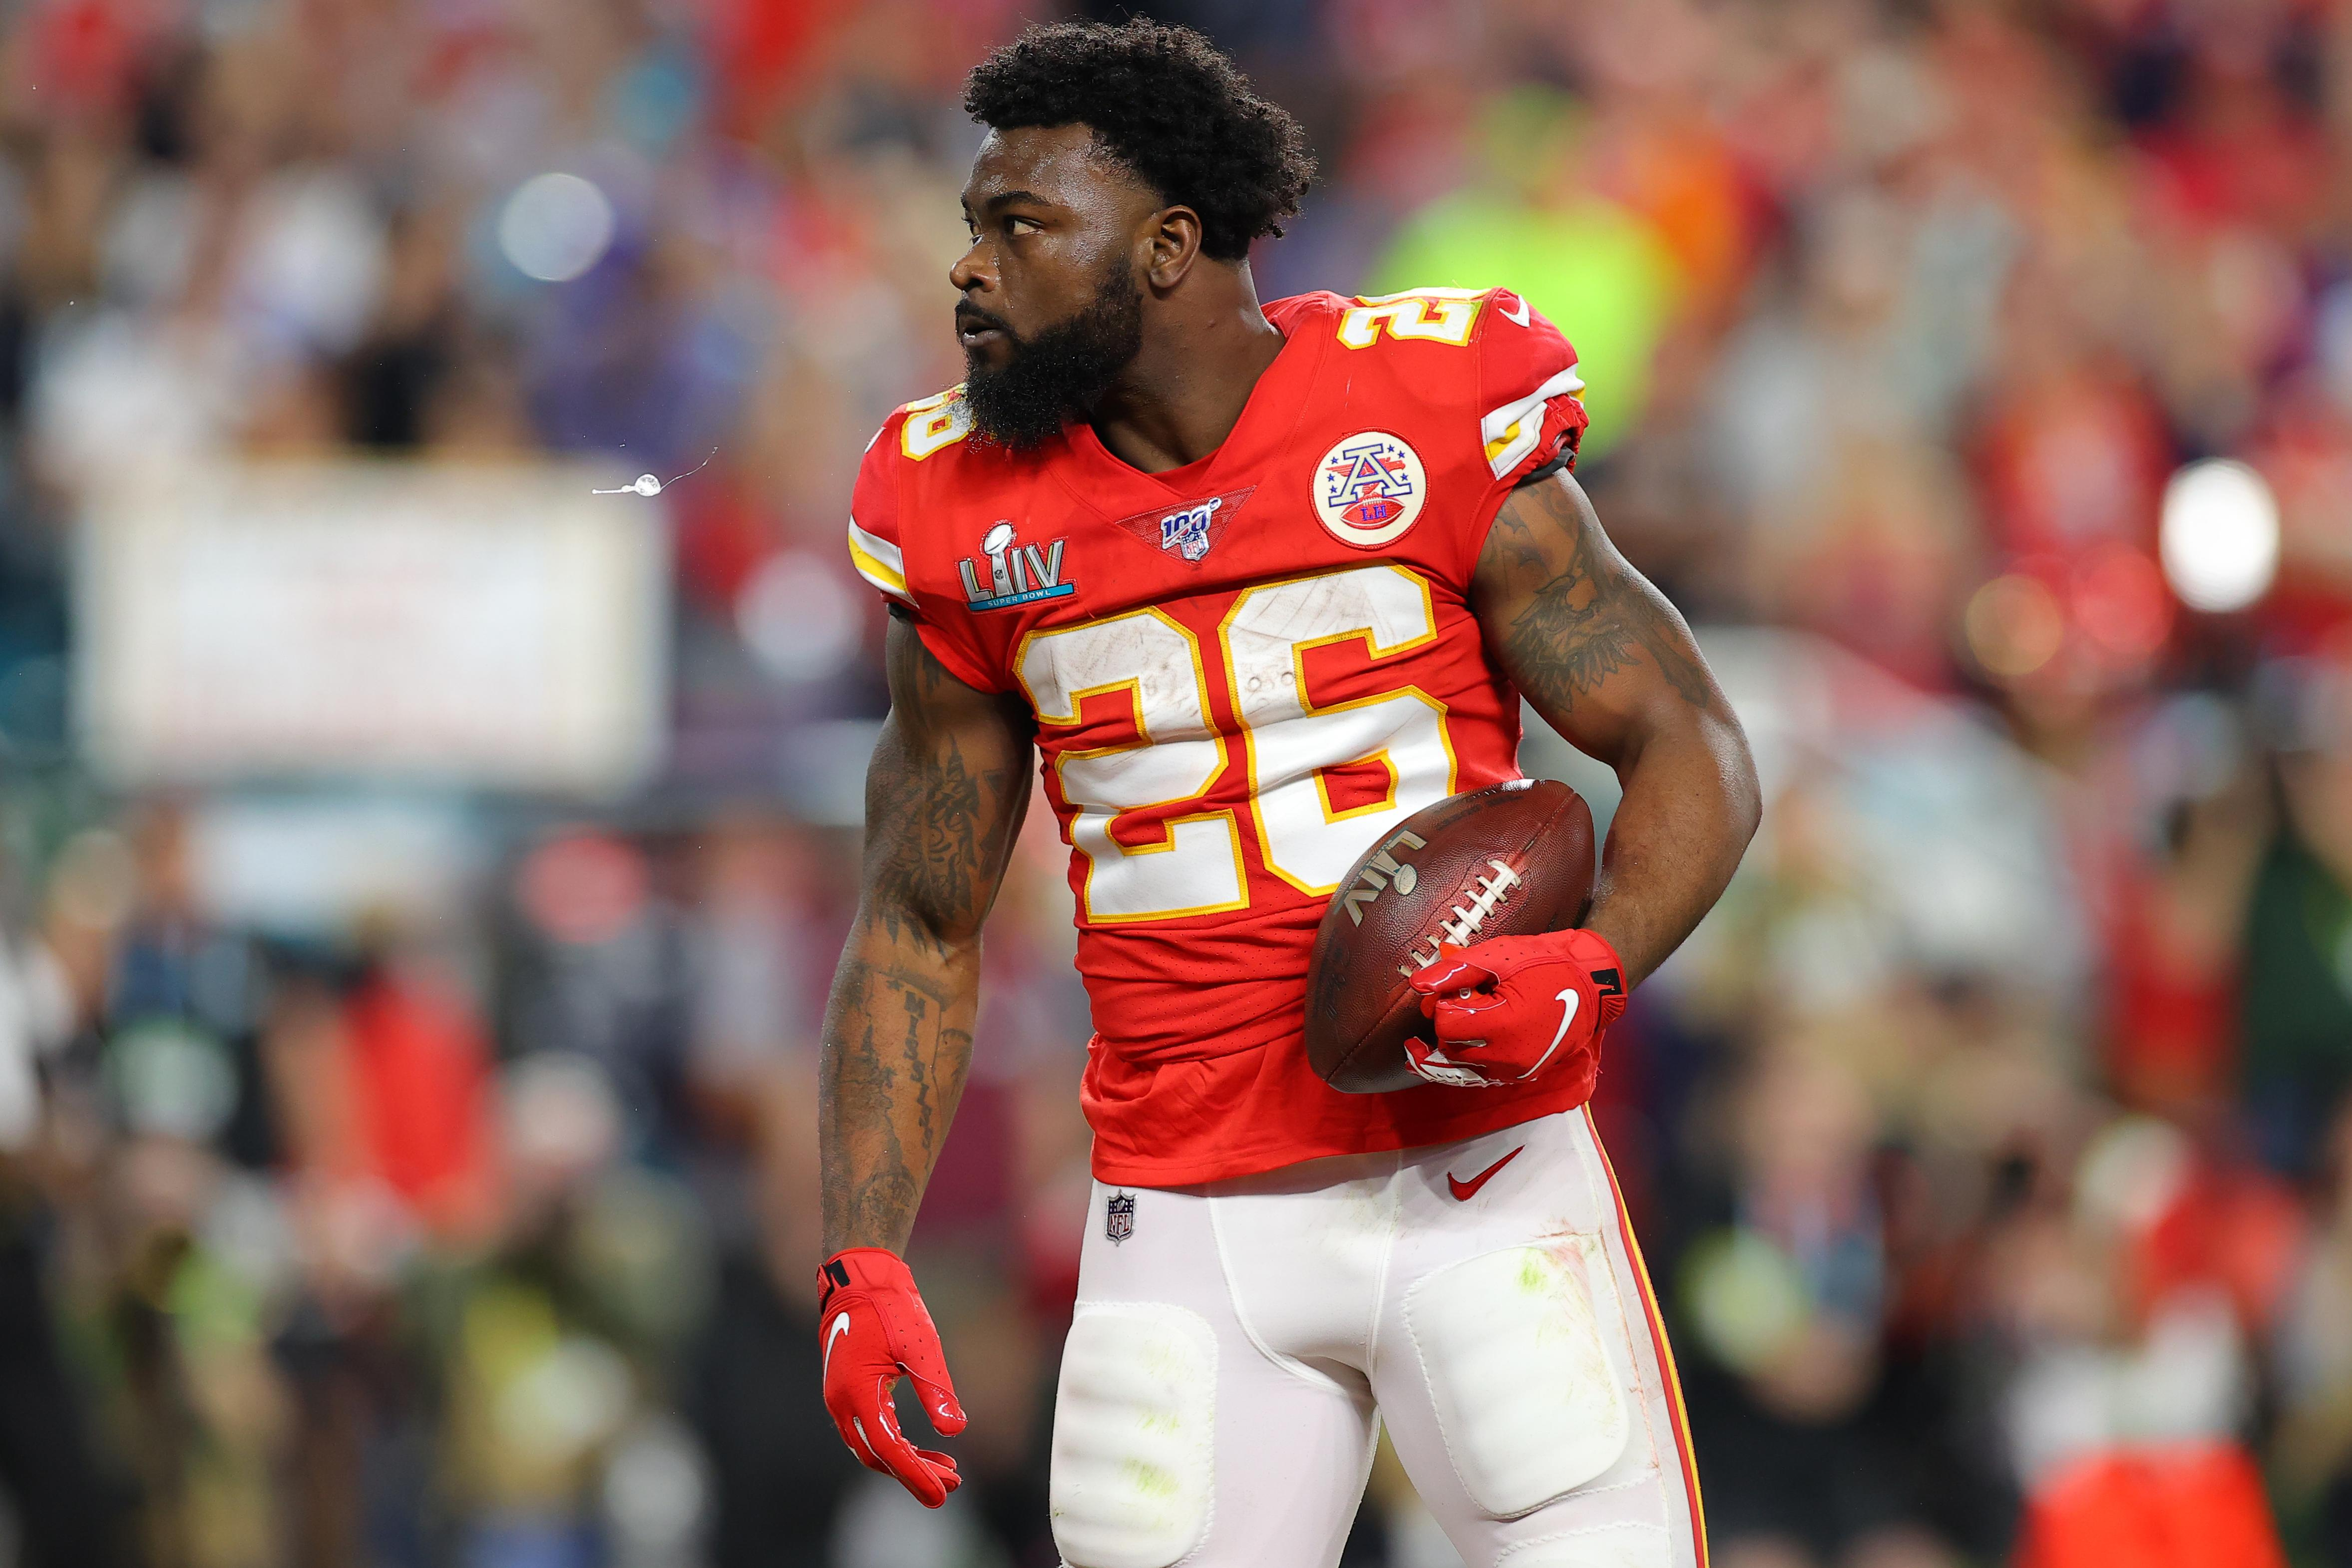 Damien Williams Says Mom S Cancer Diagnosis Led To Opt Out